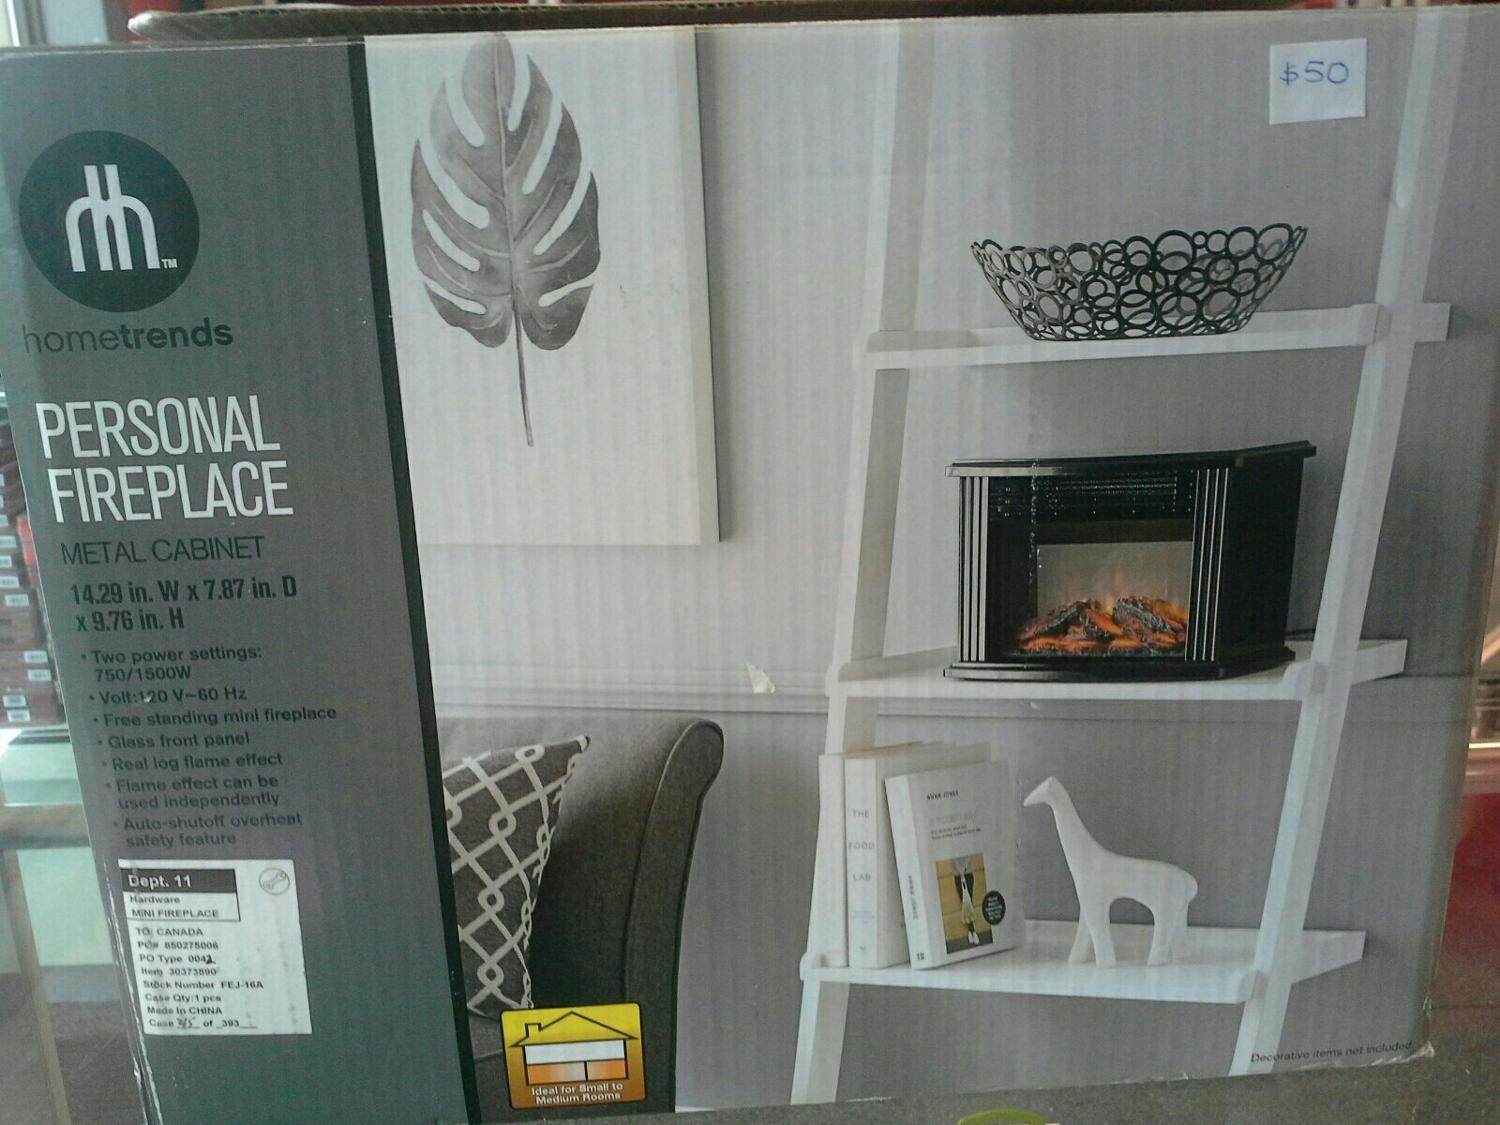 find more hometrends personal fireplace for sale at up to  off  - find more hometrends personal fireplace for sale at up to  off  ajax on